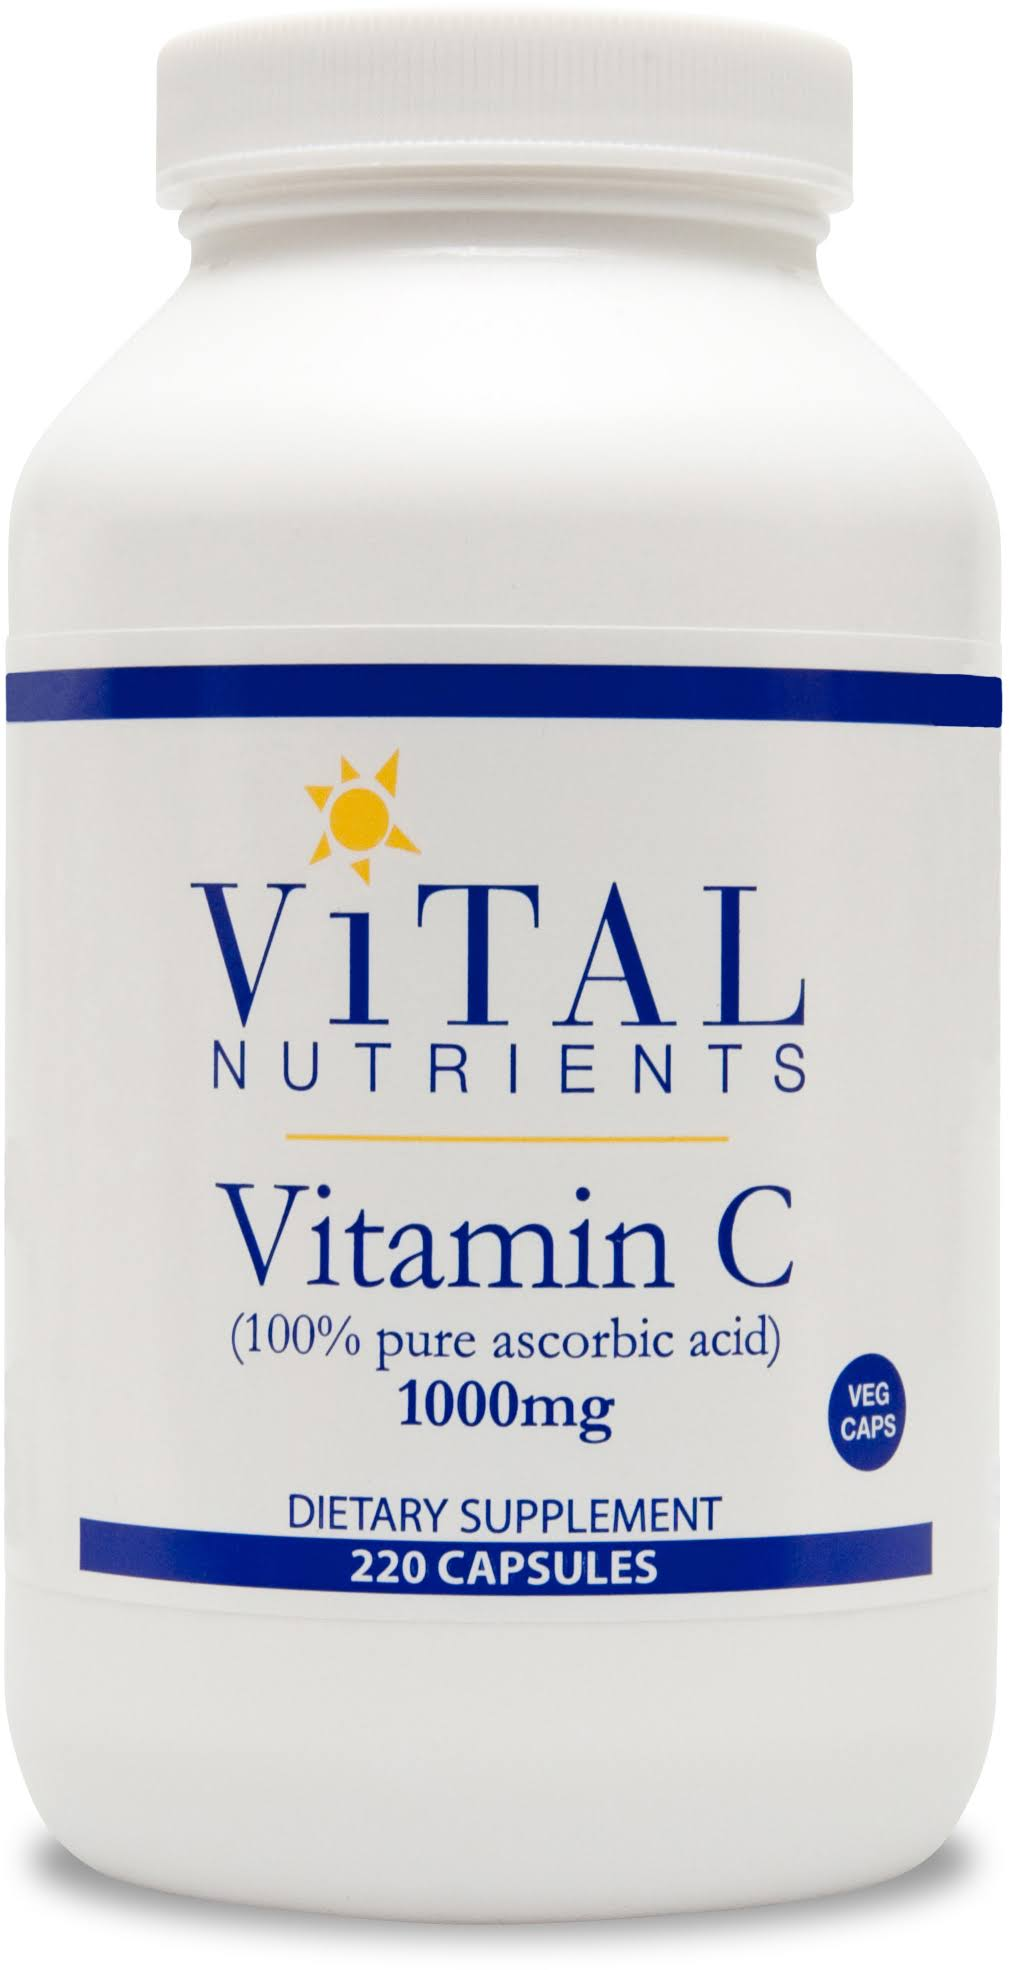 Vital Nutrients Vitamin C Supplement - 1000mg, 220 Capsules